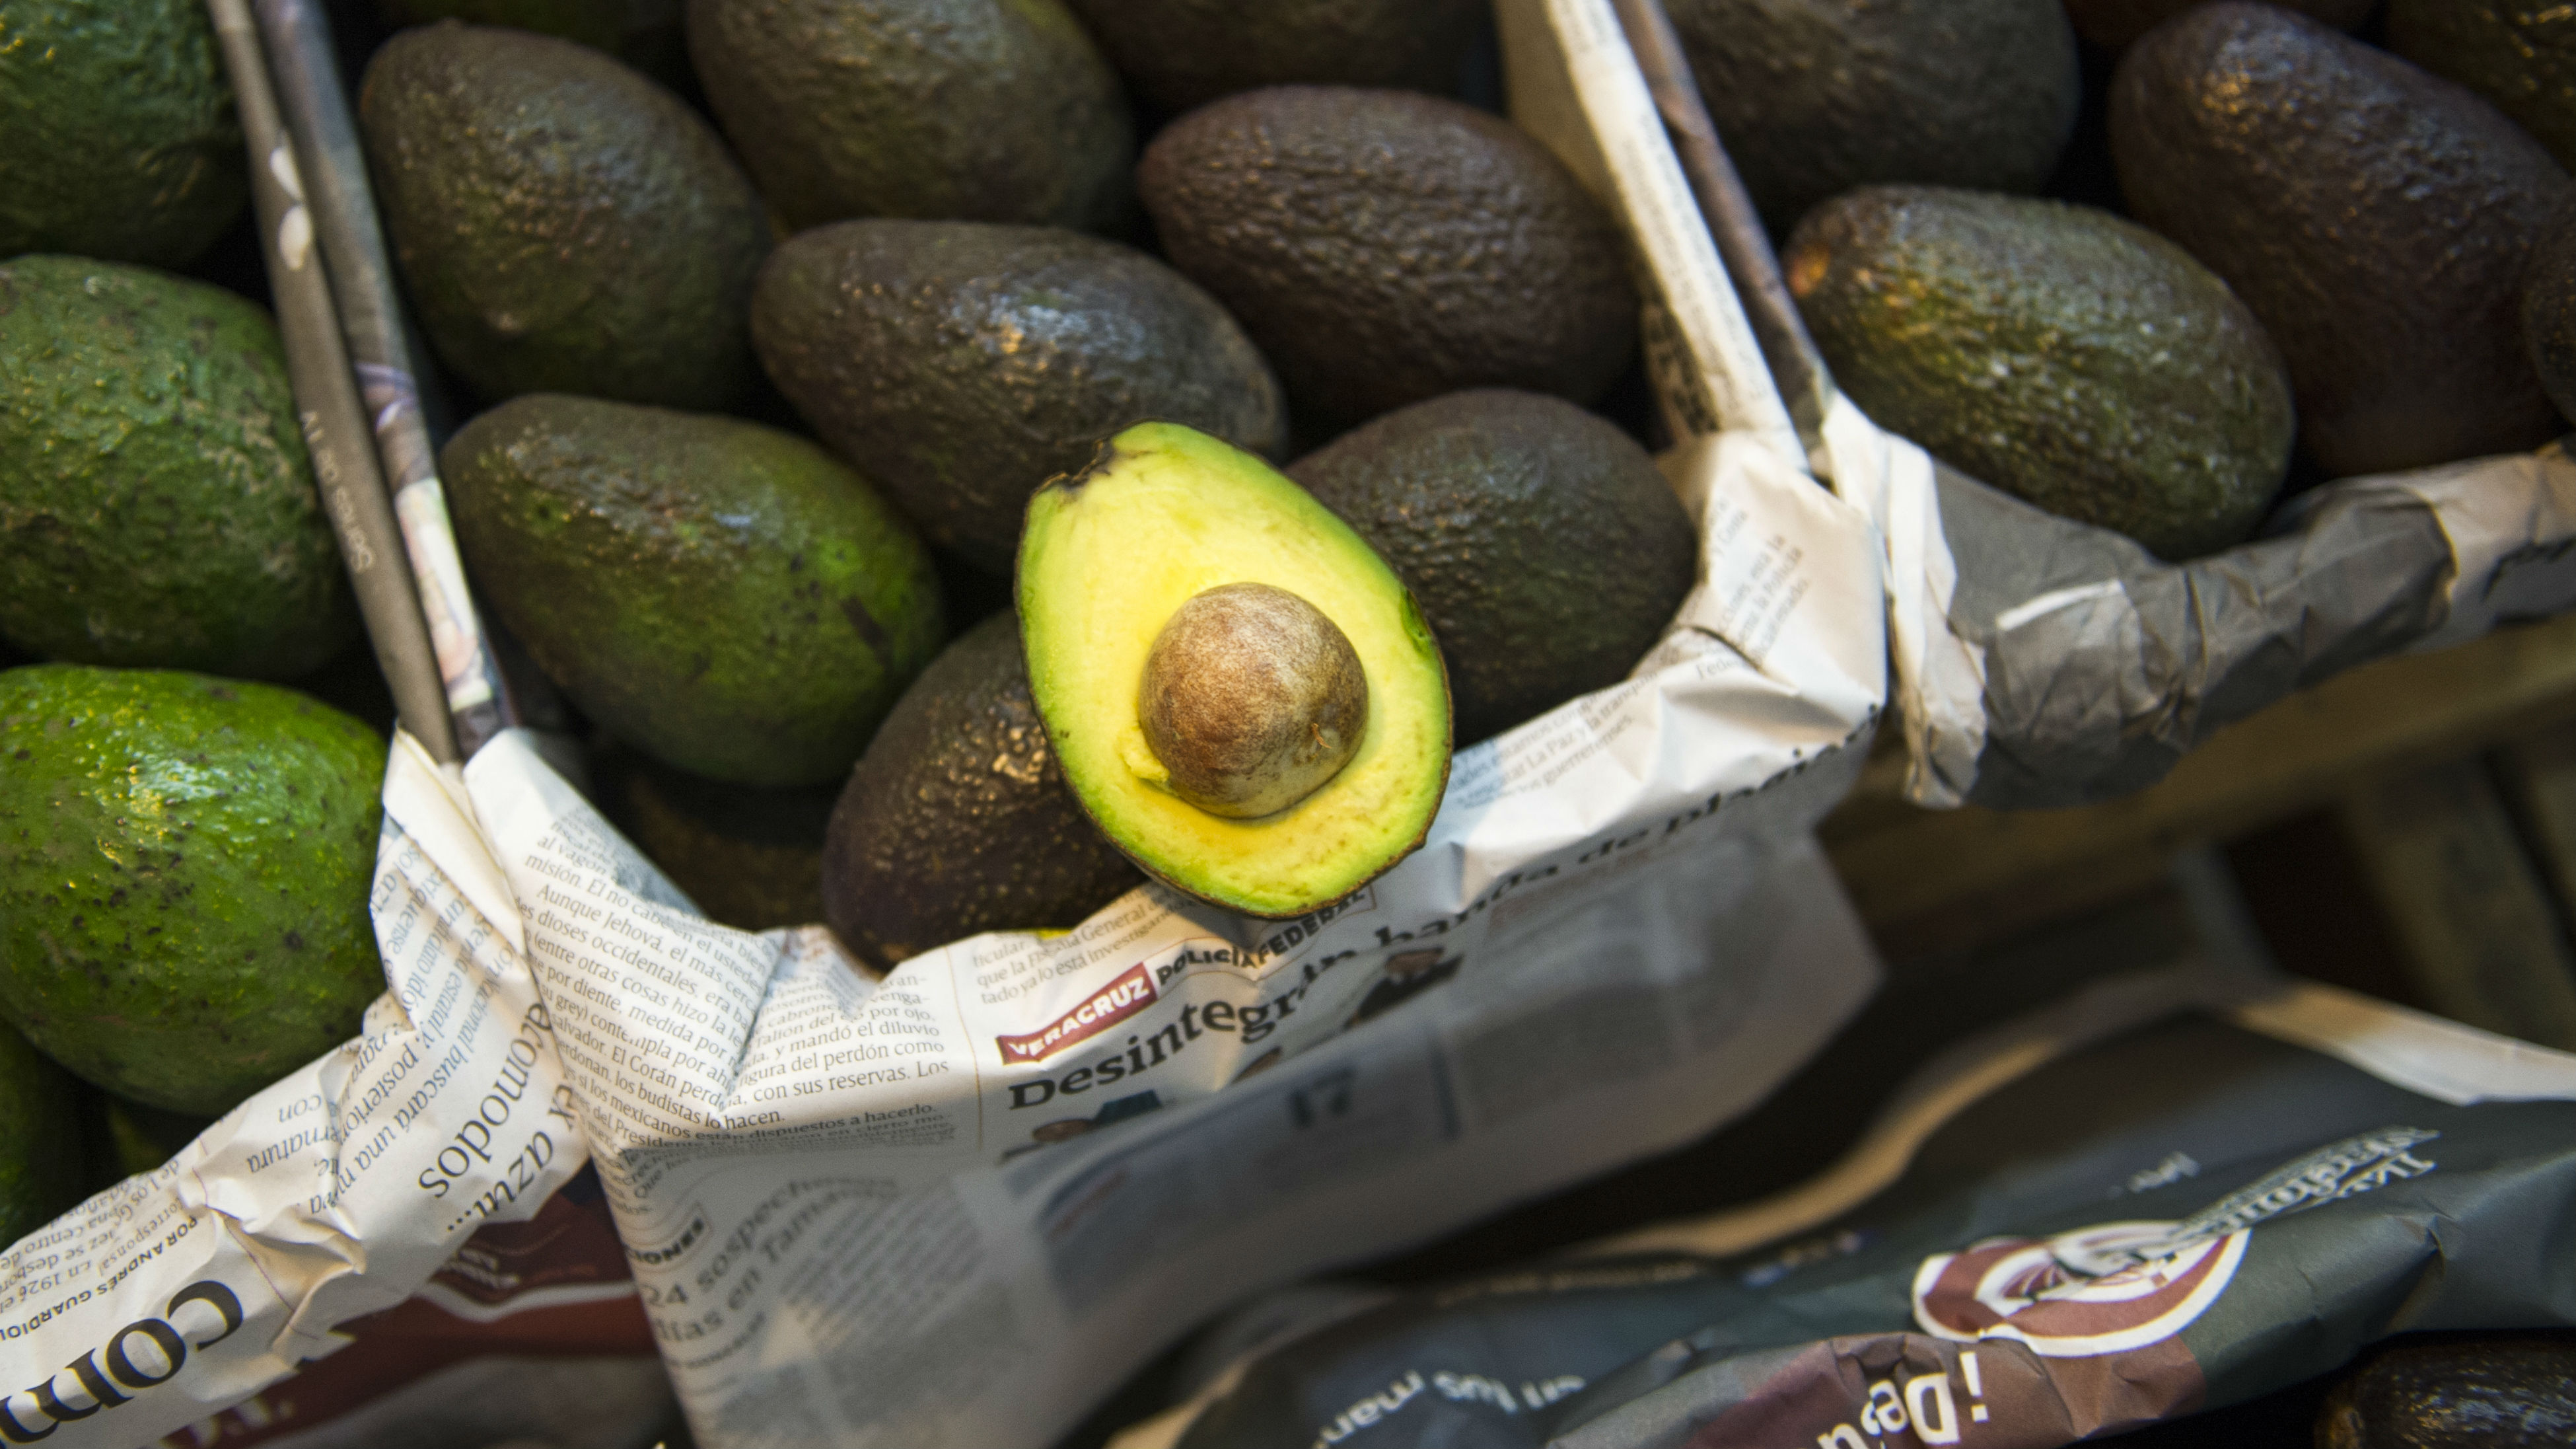 Avocados are displayed for sale in a large market in Mexico City, Tuesday, Aug. 9, 2016. Avocado trees flourish at about the same altitude and climate as the pine and fir forests of Michoacan, the state that produces most of Mexico's avocados. That has led farmers to fight a game of cat-and-mouse with authorities, thinning the forests and planting young avocado trees under the canopy.